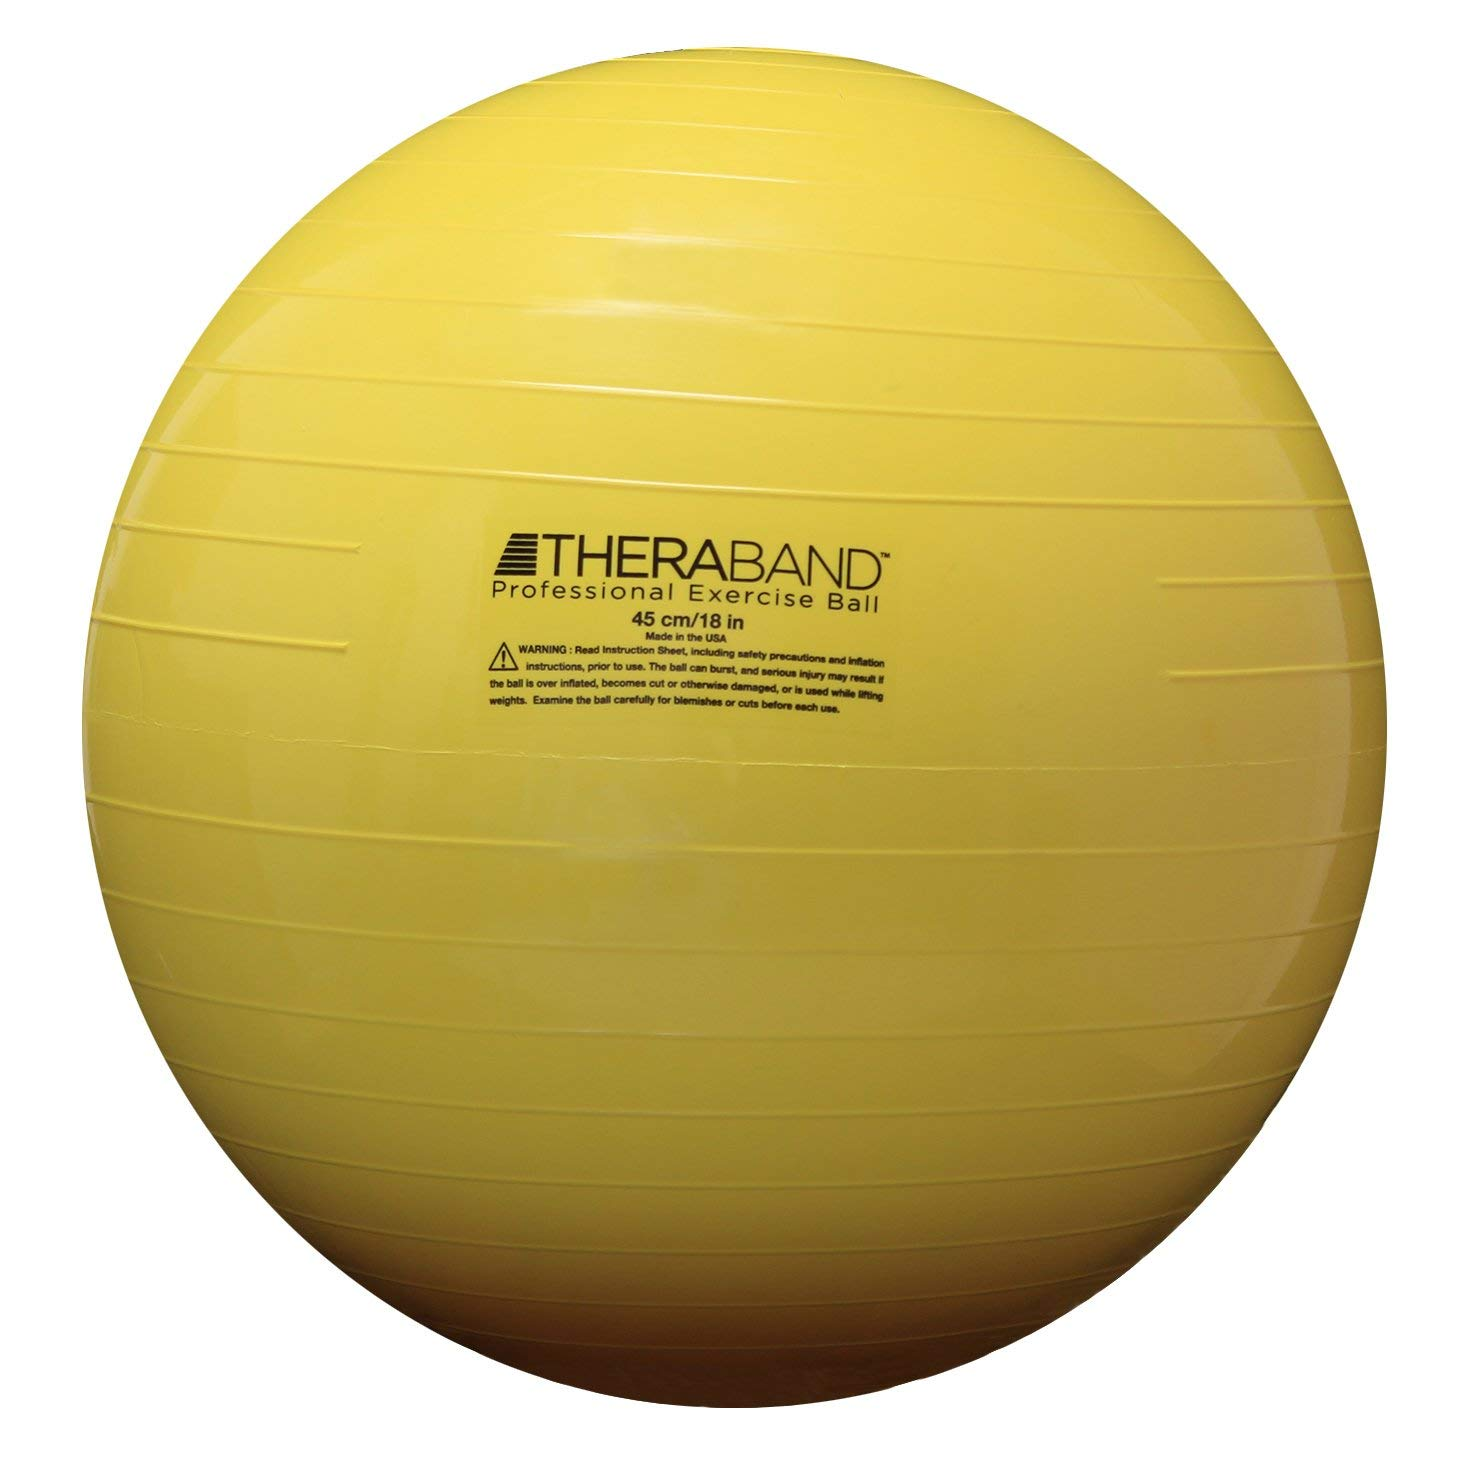 TheraBand Exercise Ball, Stability Ball with 45 cm Diameter for Athletes 4'7'' to 5'0'' Tall, Standard Fitness Ball for Posture, Balance, Yoga, Pilates, Core, and Rehab, Yellow